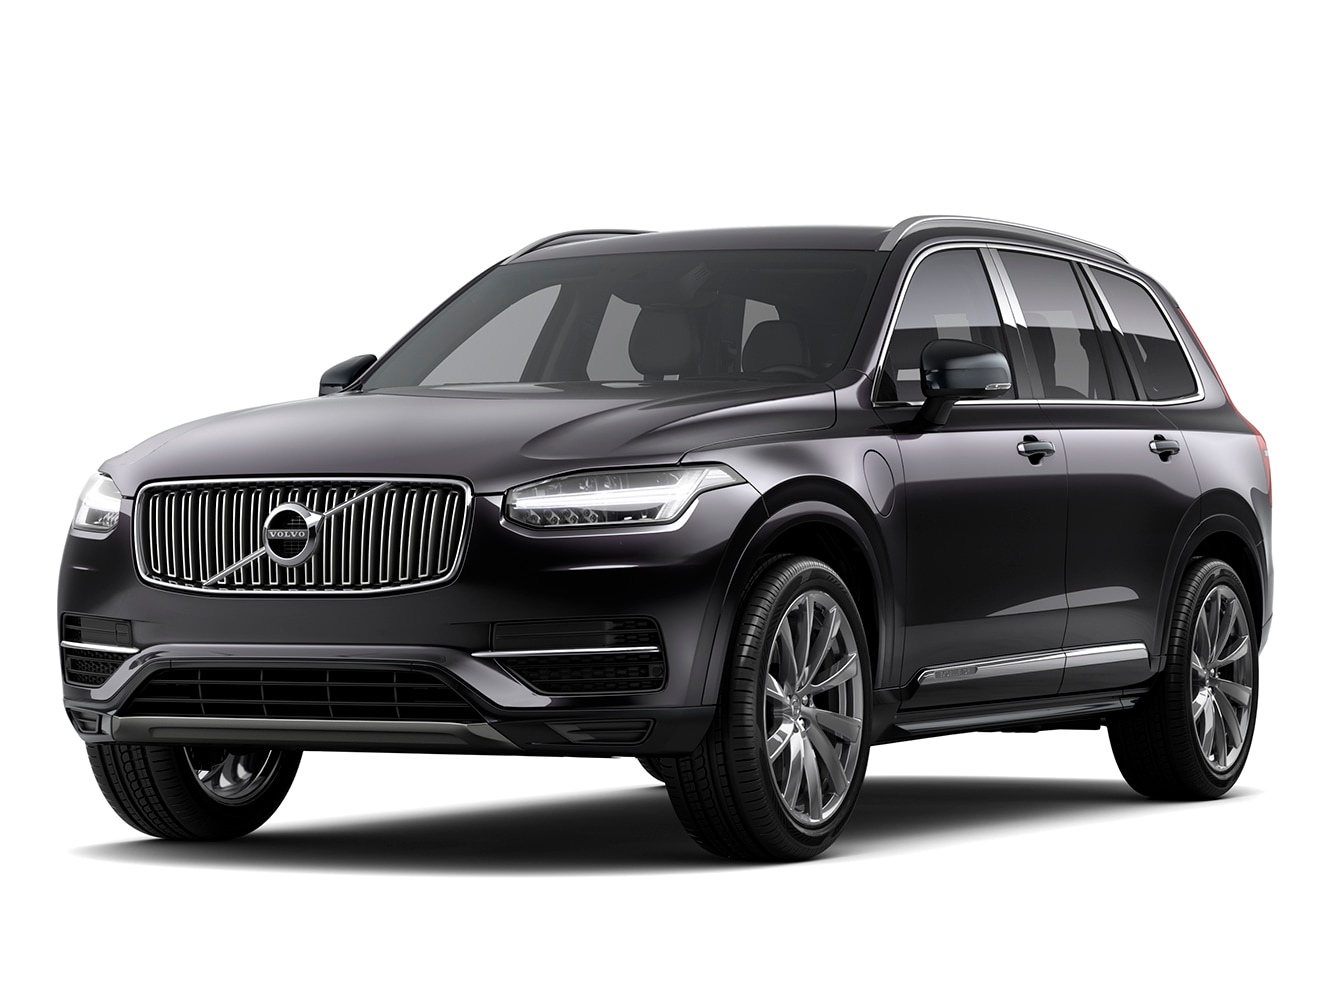 The Volvo XC90 Excellence trim